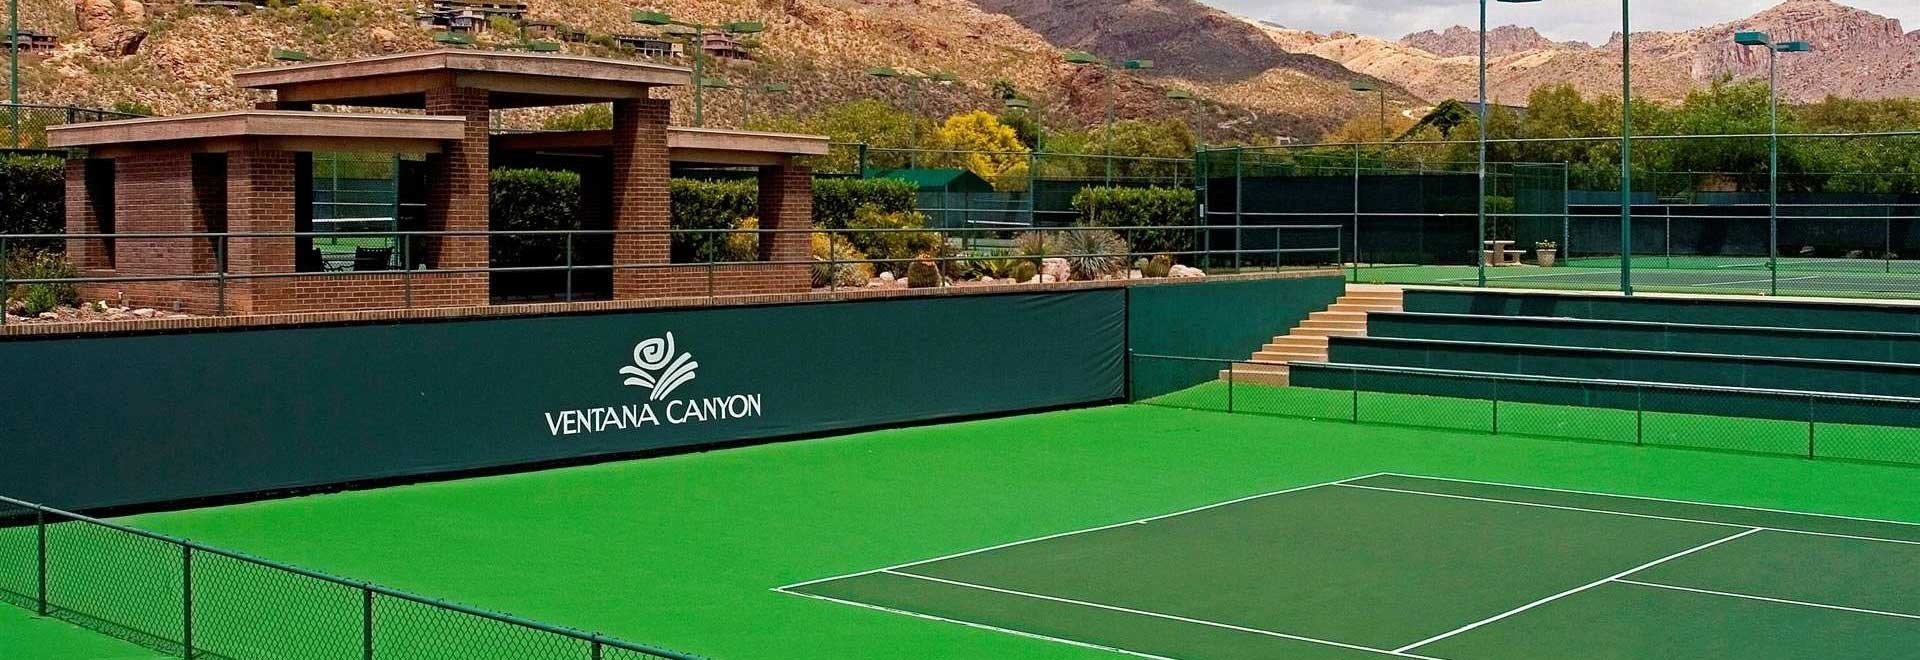 The Lodge at Ventana Canyon, Arizona - Book. Travel. Play.